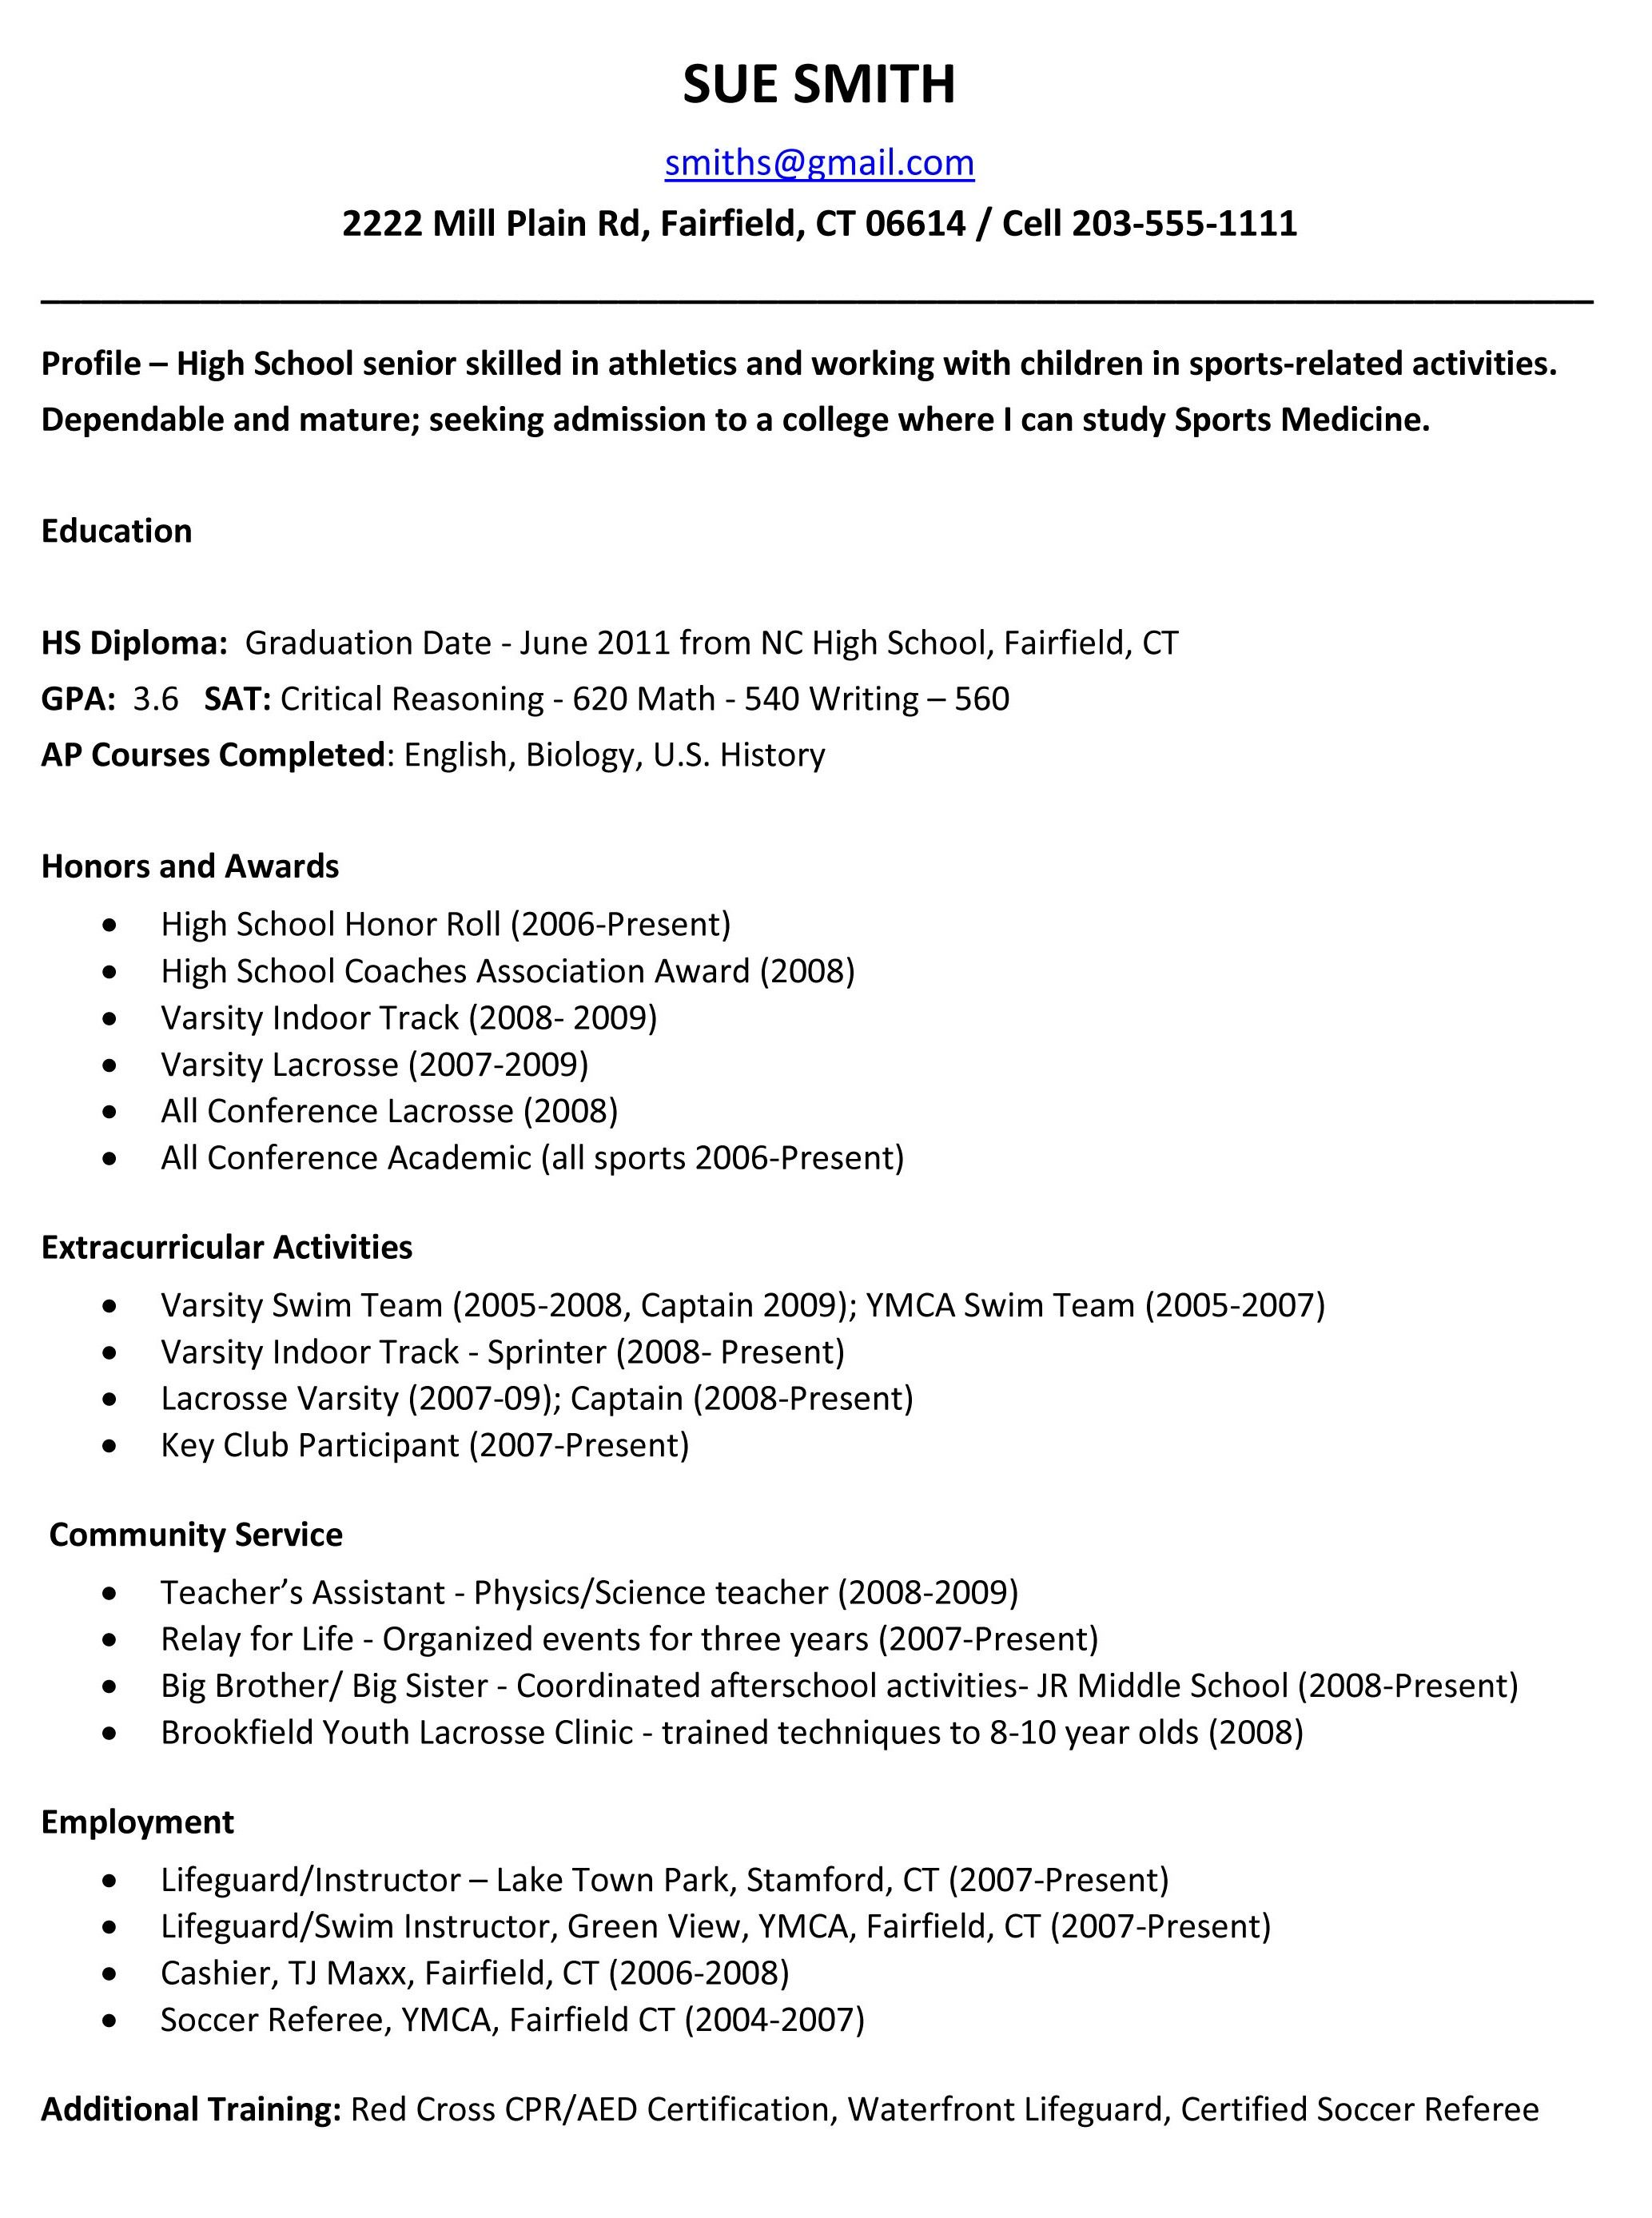 Pin by resumejob on Resume Job | Pinterest | High school resume ...